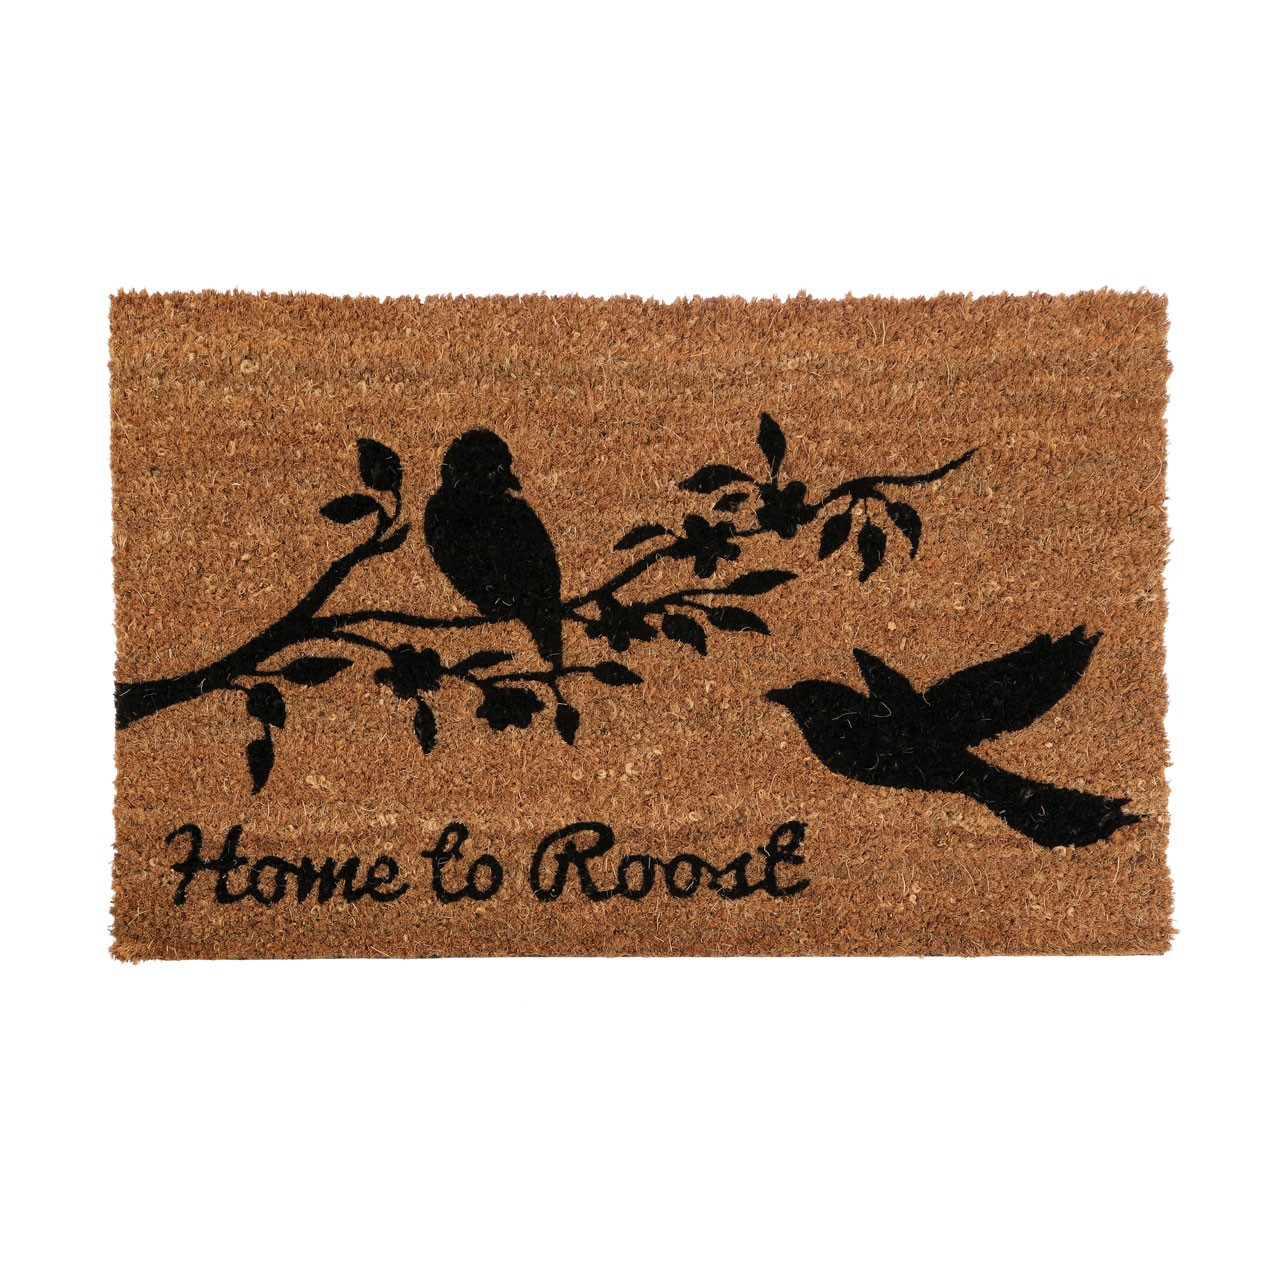 "Prime Furnishing ""Home To Roost"" Doormat, PVC Backed Coir"